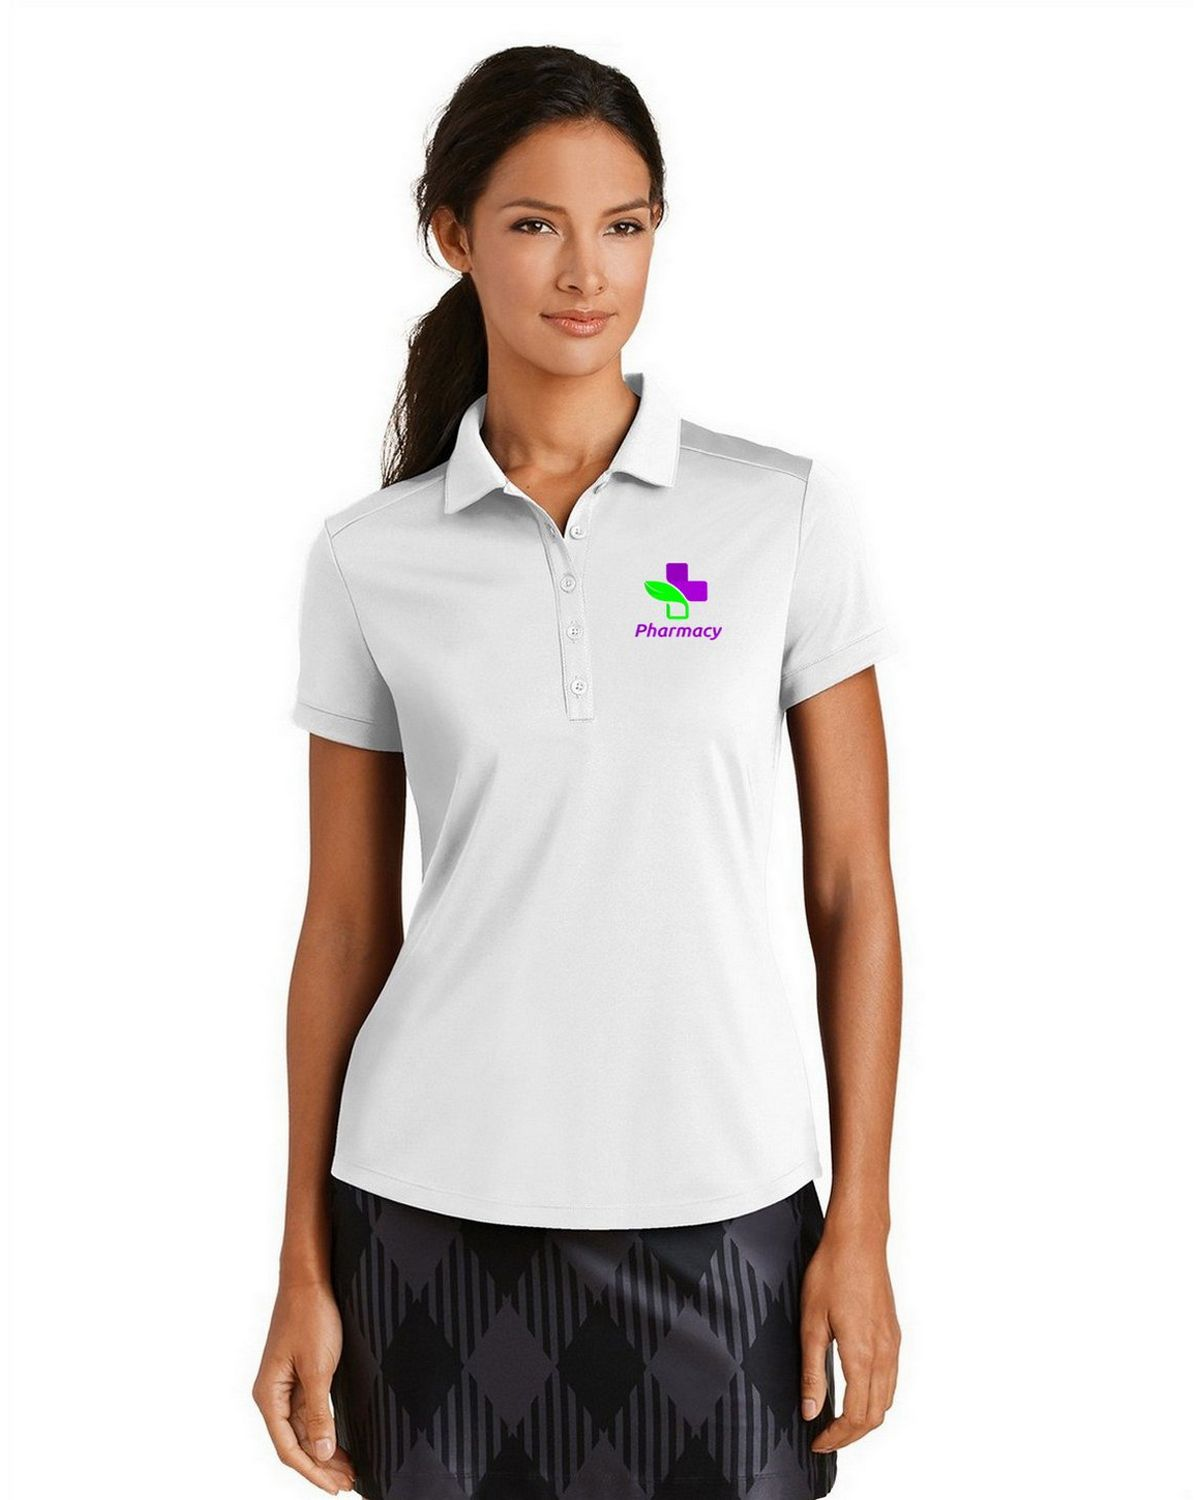 Nike golf dri fit logo embroidered performance polo at for Women s dri fit golf shirts